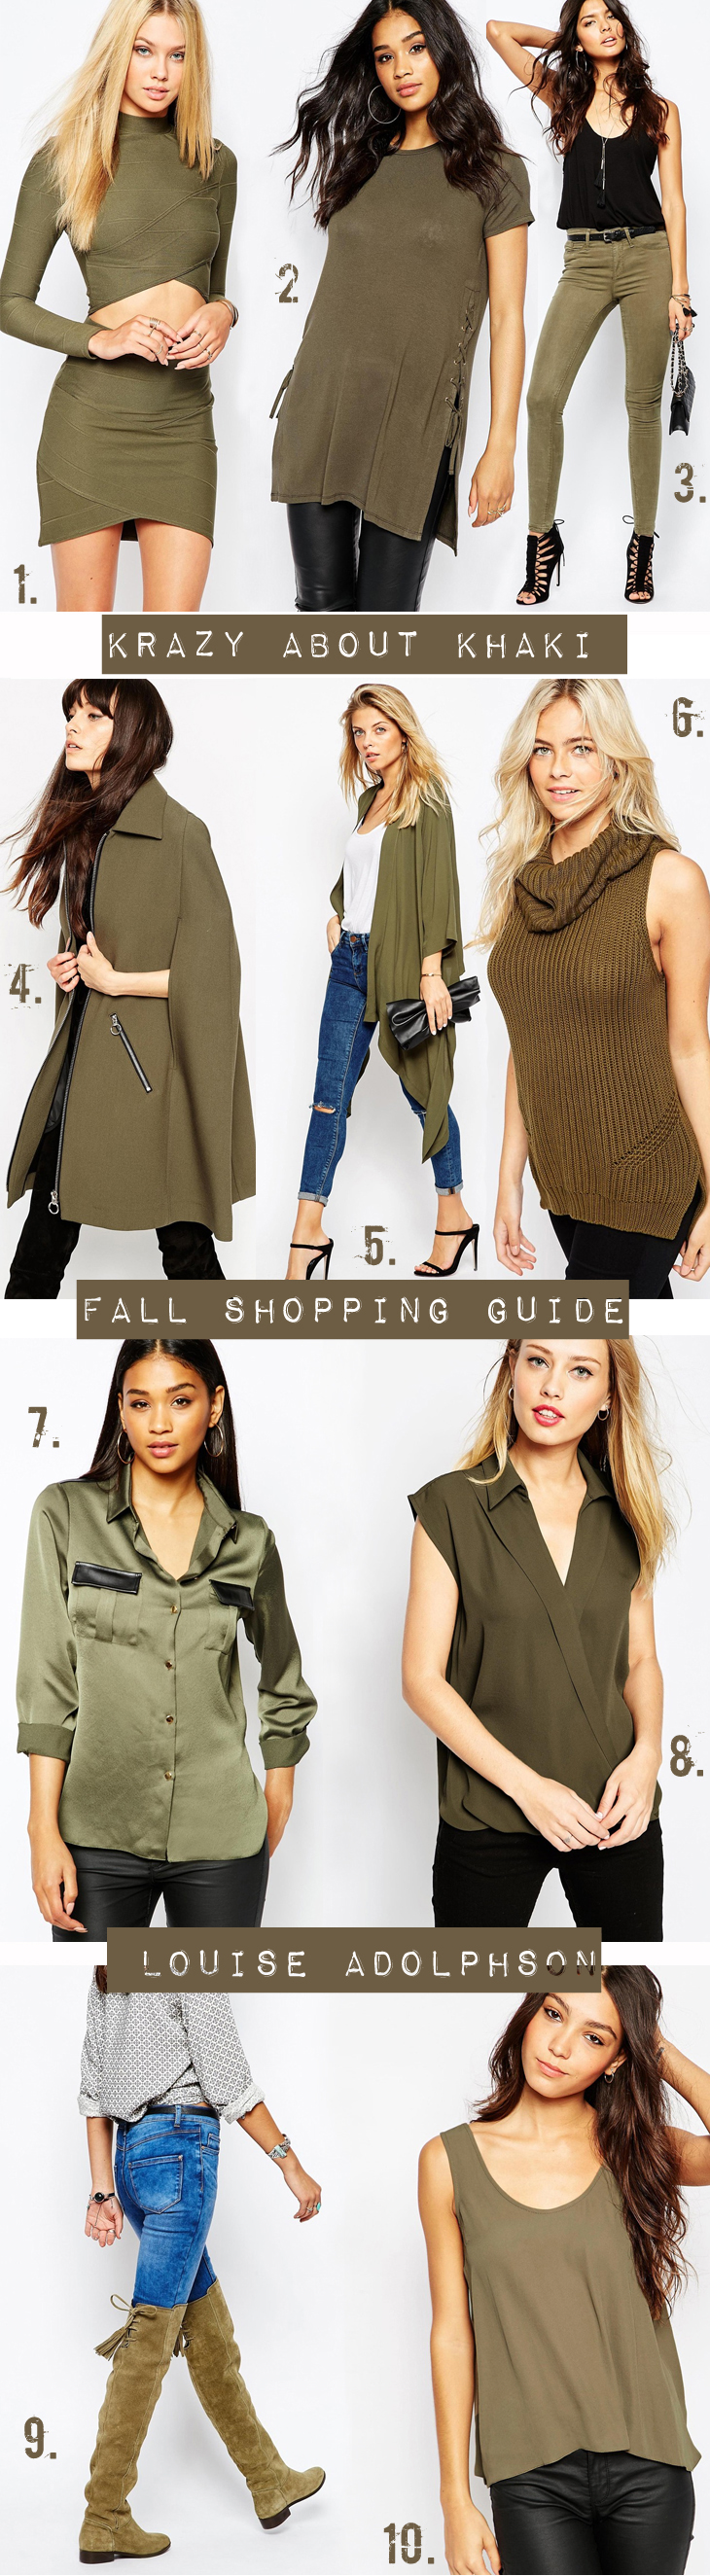 krazy about khaki khaki clothes fall fashion autumn kim kardashian